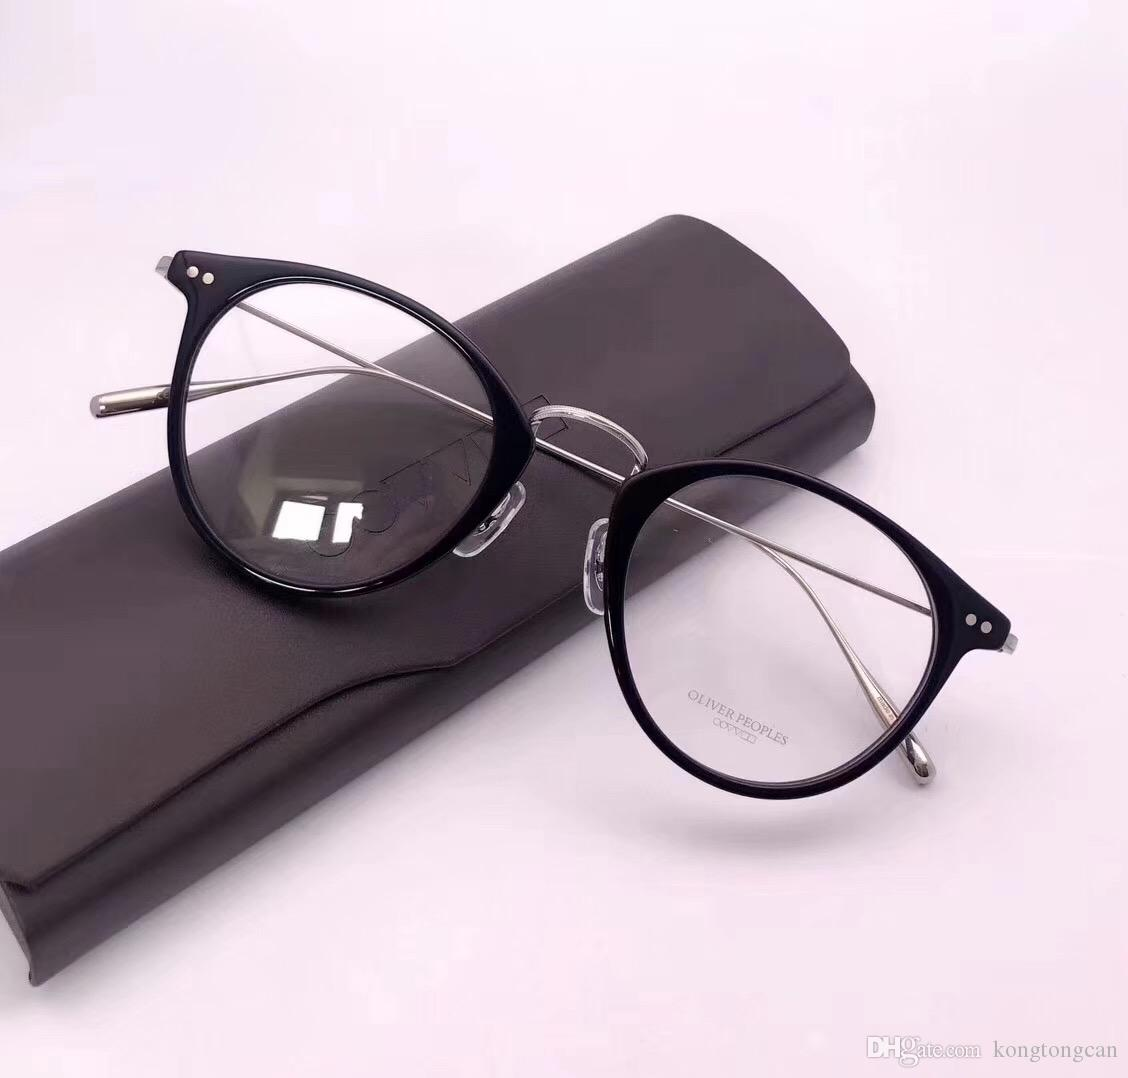 b61405ecf64 2019 Vintage Retro Oliver Peoples Eyeglasses Pure Titanium Deckens Acetate  Frame Women Man Brand Design Original Box And Case Prescription Lens From  ...